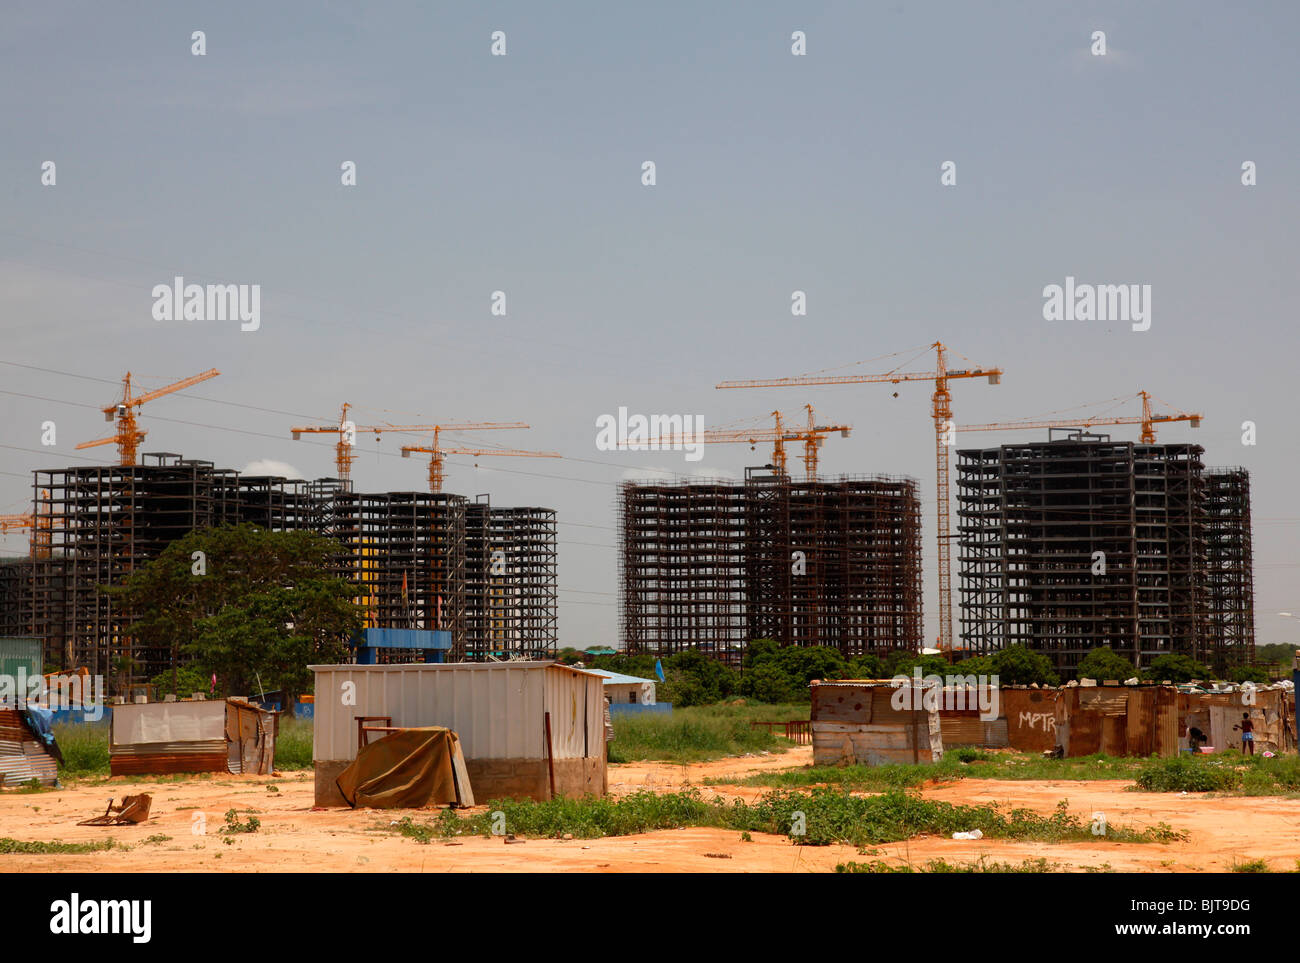 The Chinese Invasion helping in constructing housing projects on the outskirts of Luanda. Angola. Africa © - Stock Image